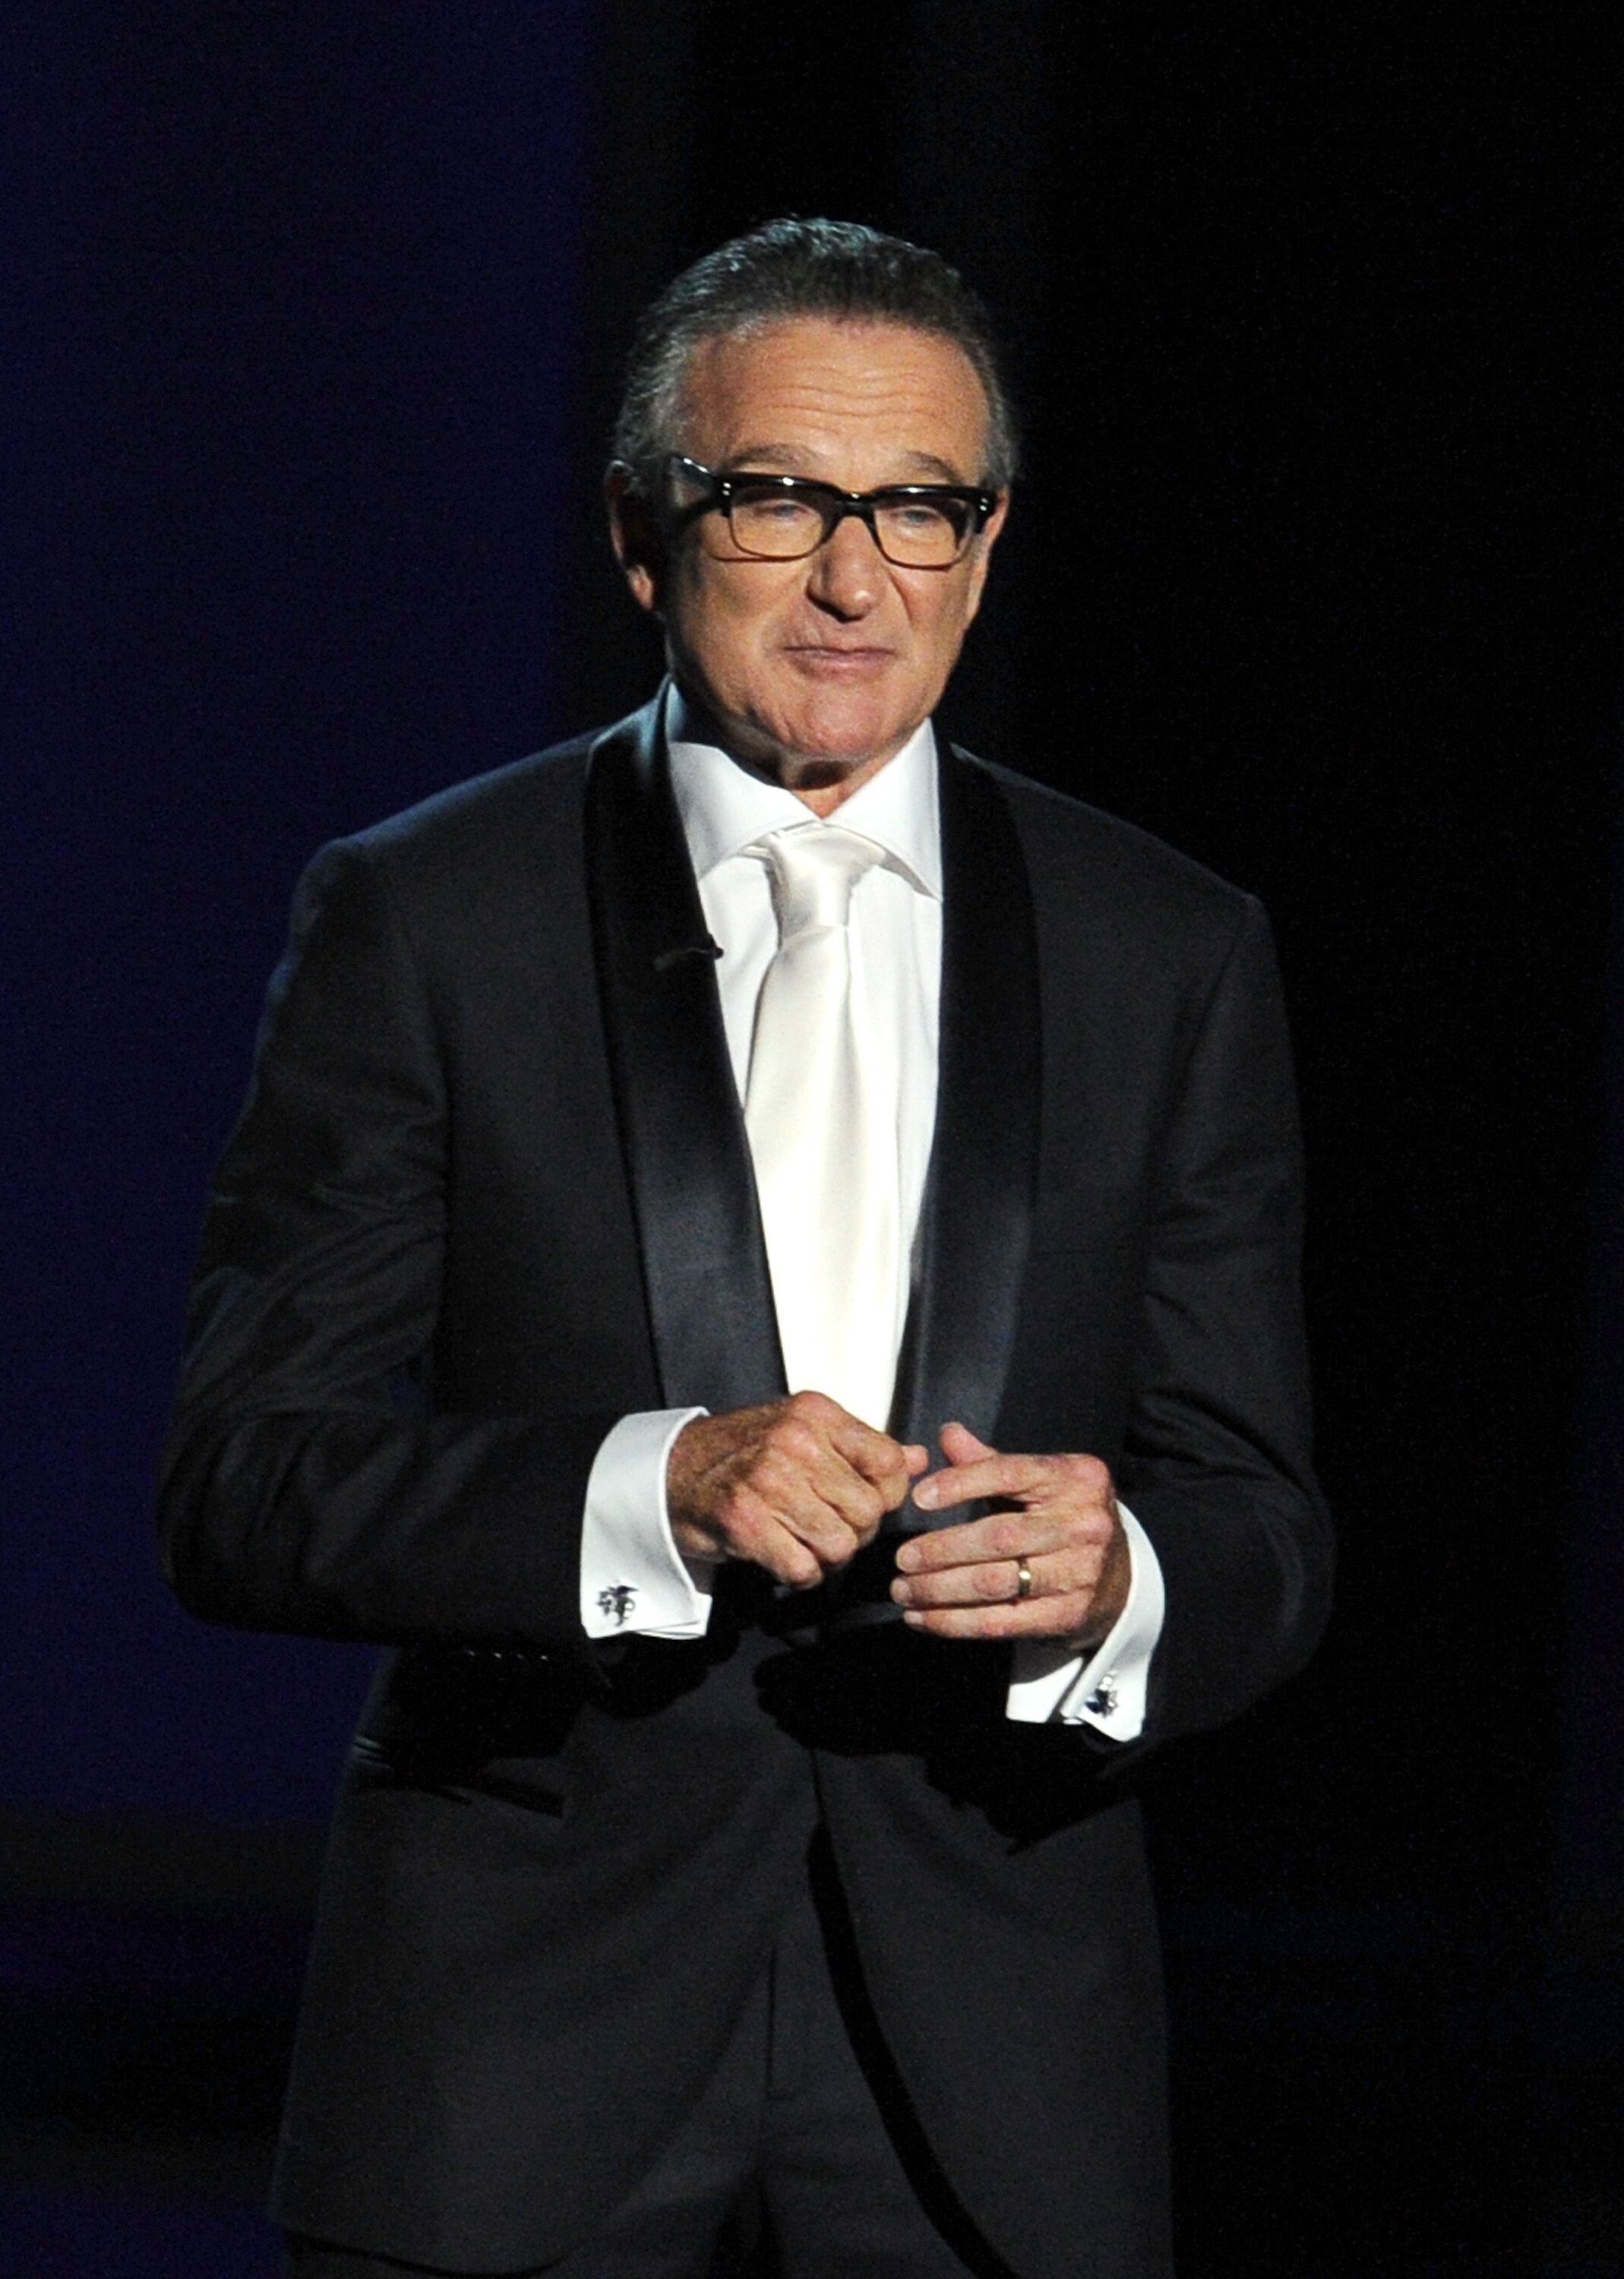 Robin Williams speaks onstage during the 65th Annual Primetime Emmy Awards. | Source: Getty Images